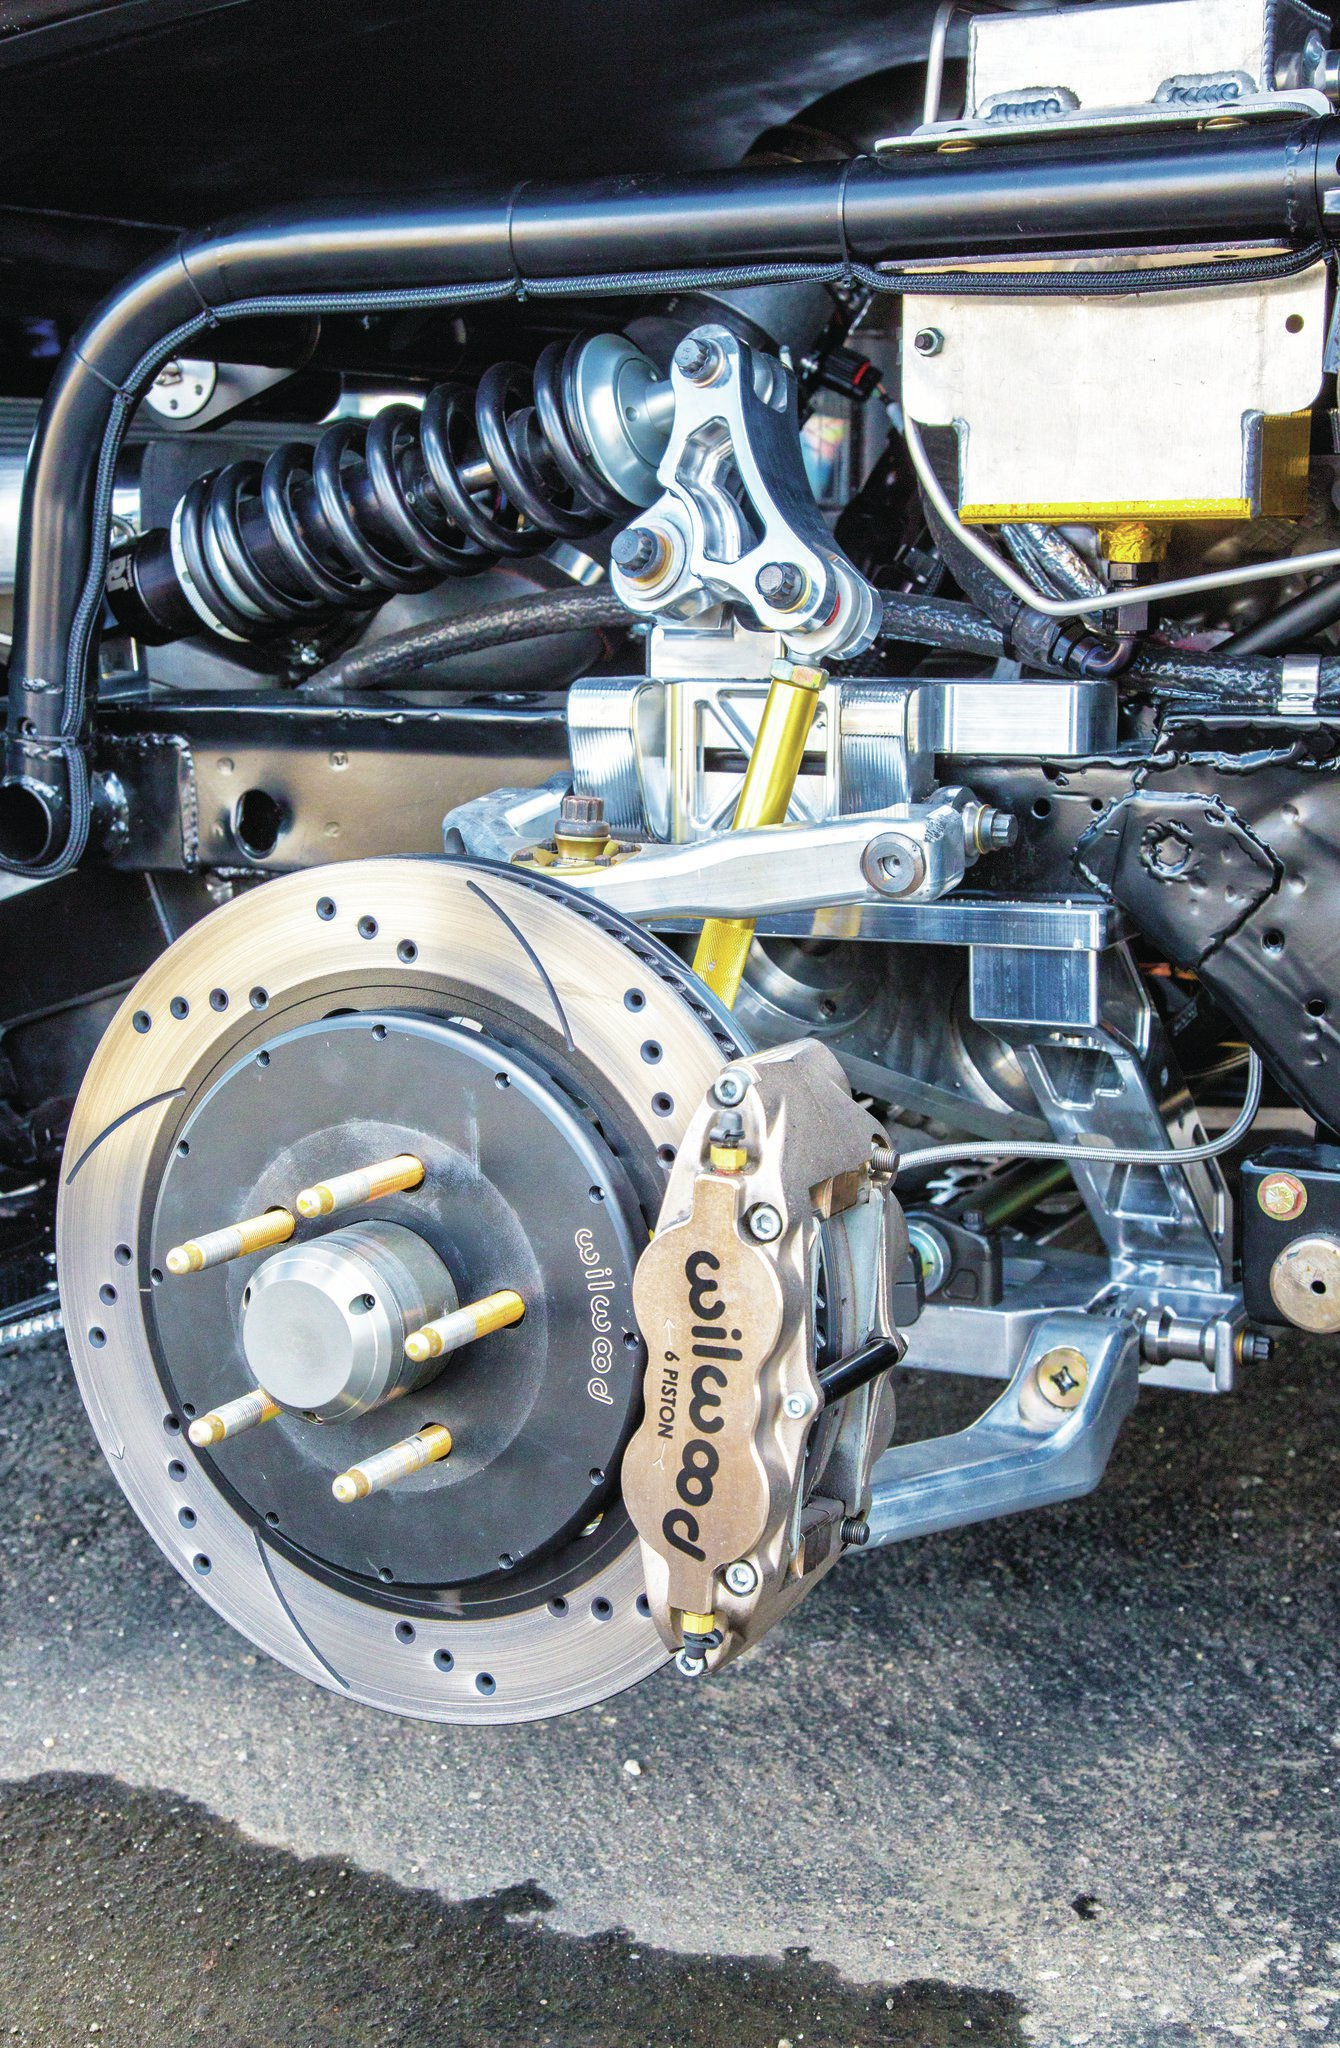 Wilwood two-piece, 14-inch rotors and six-piston calipers are used in the front while 13-inch rotors and four-piston calipers are used in the rear. Note the cantilever suspension that uses a pushrod and bellcrank to transfer loads from the suspension to the coilover.